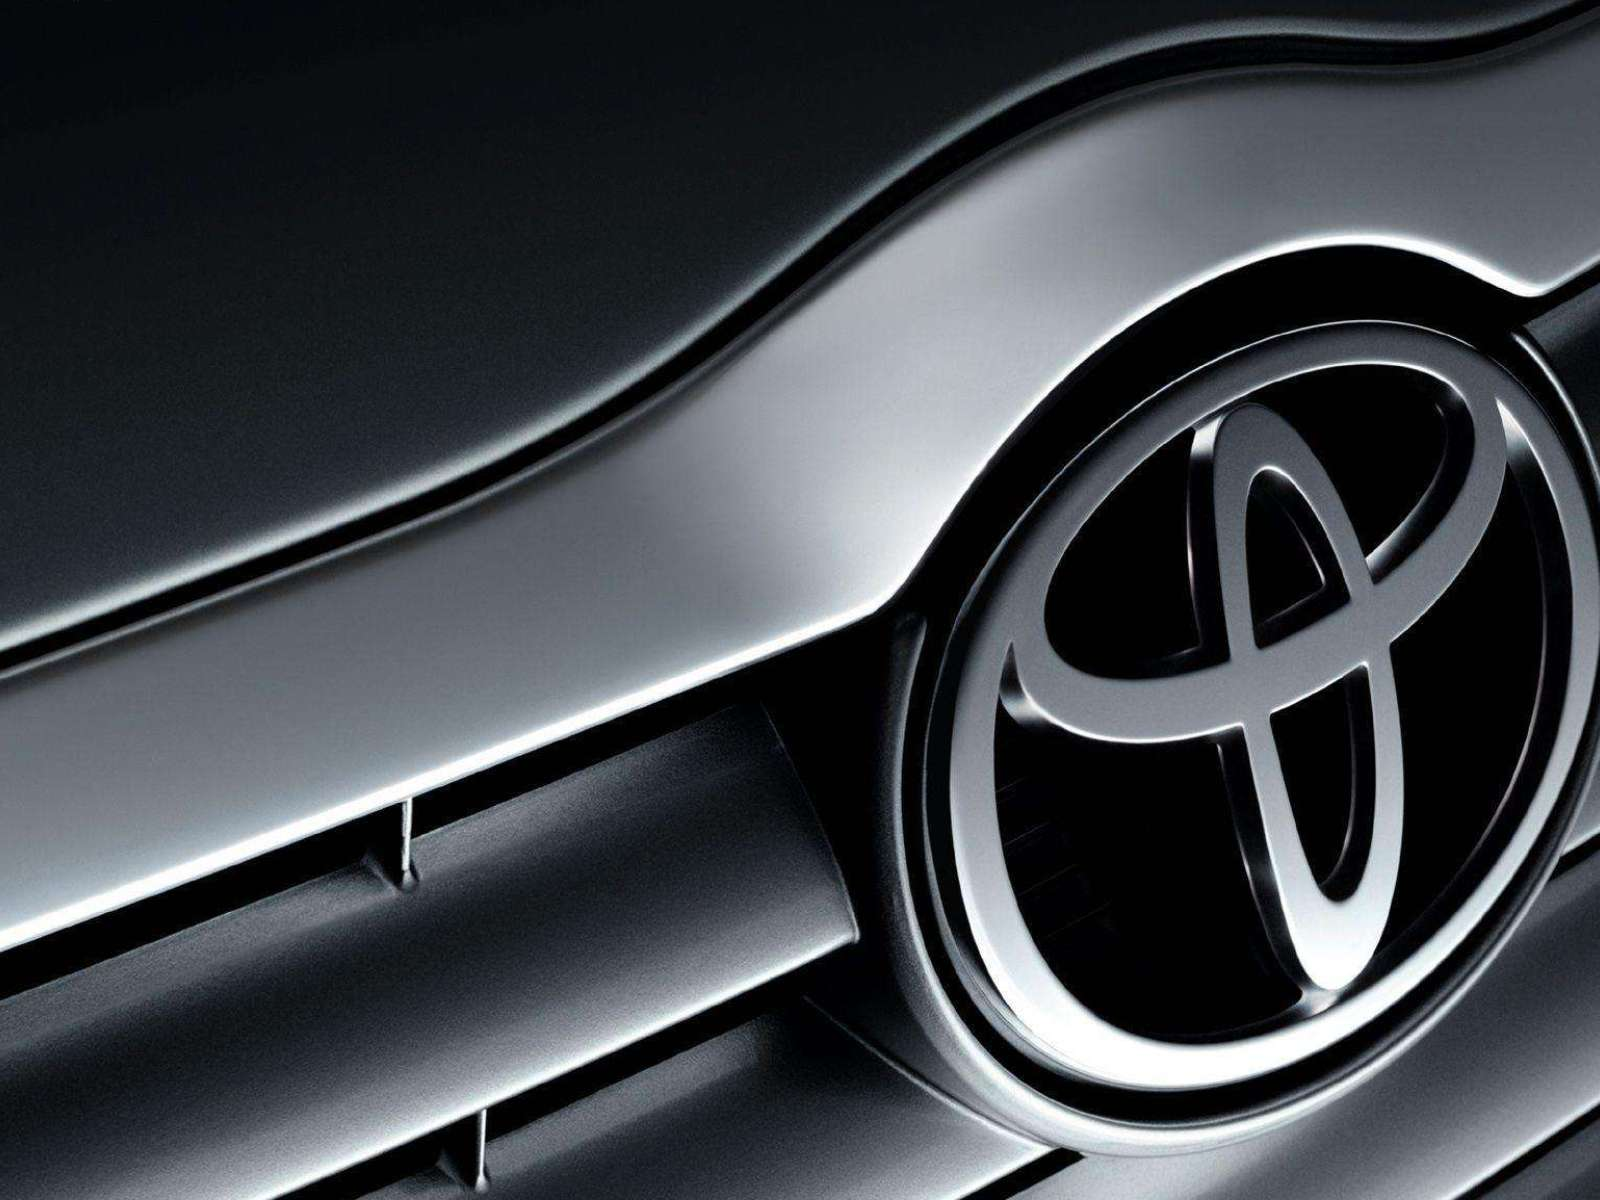 Toyota Wallpapers GB95T58   4USkY 1600x1200